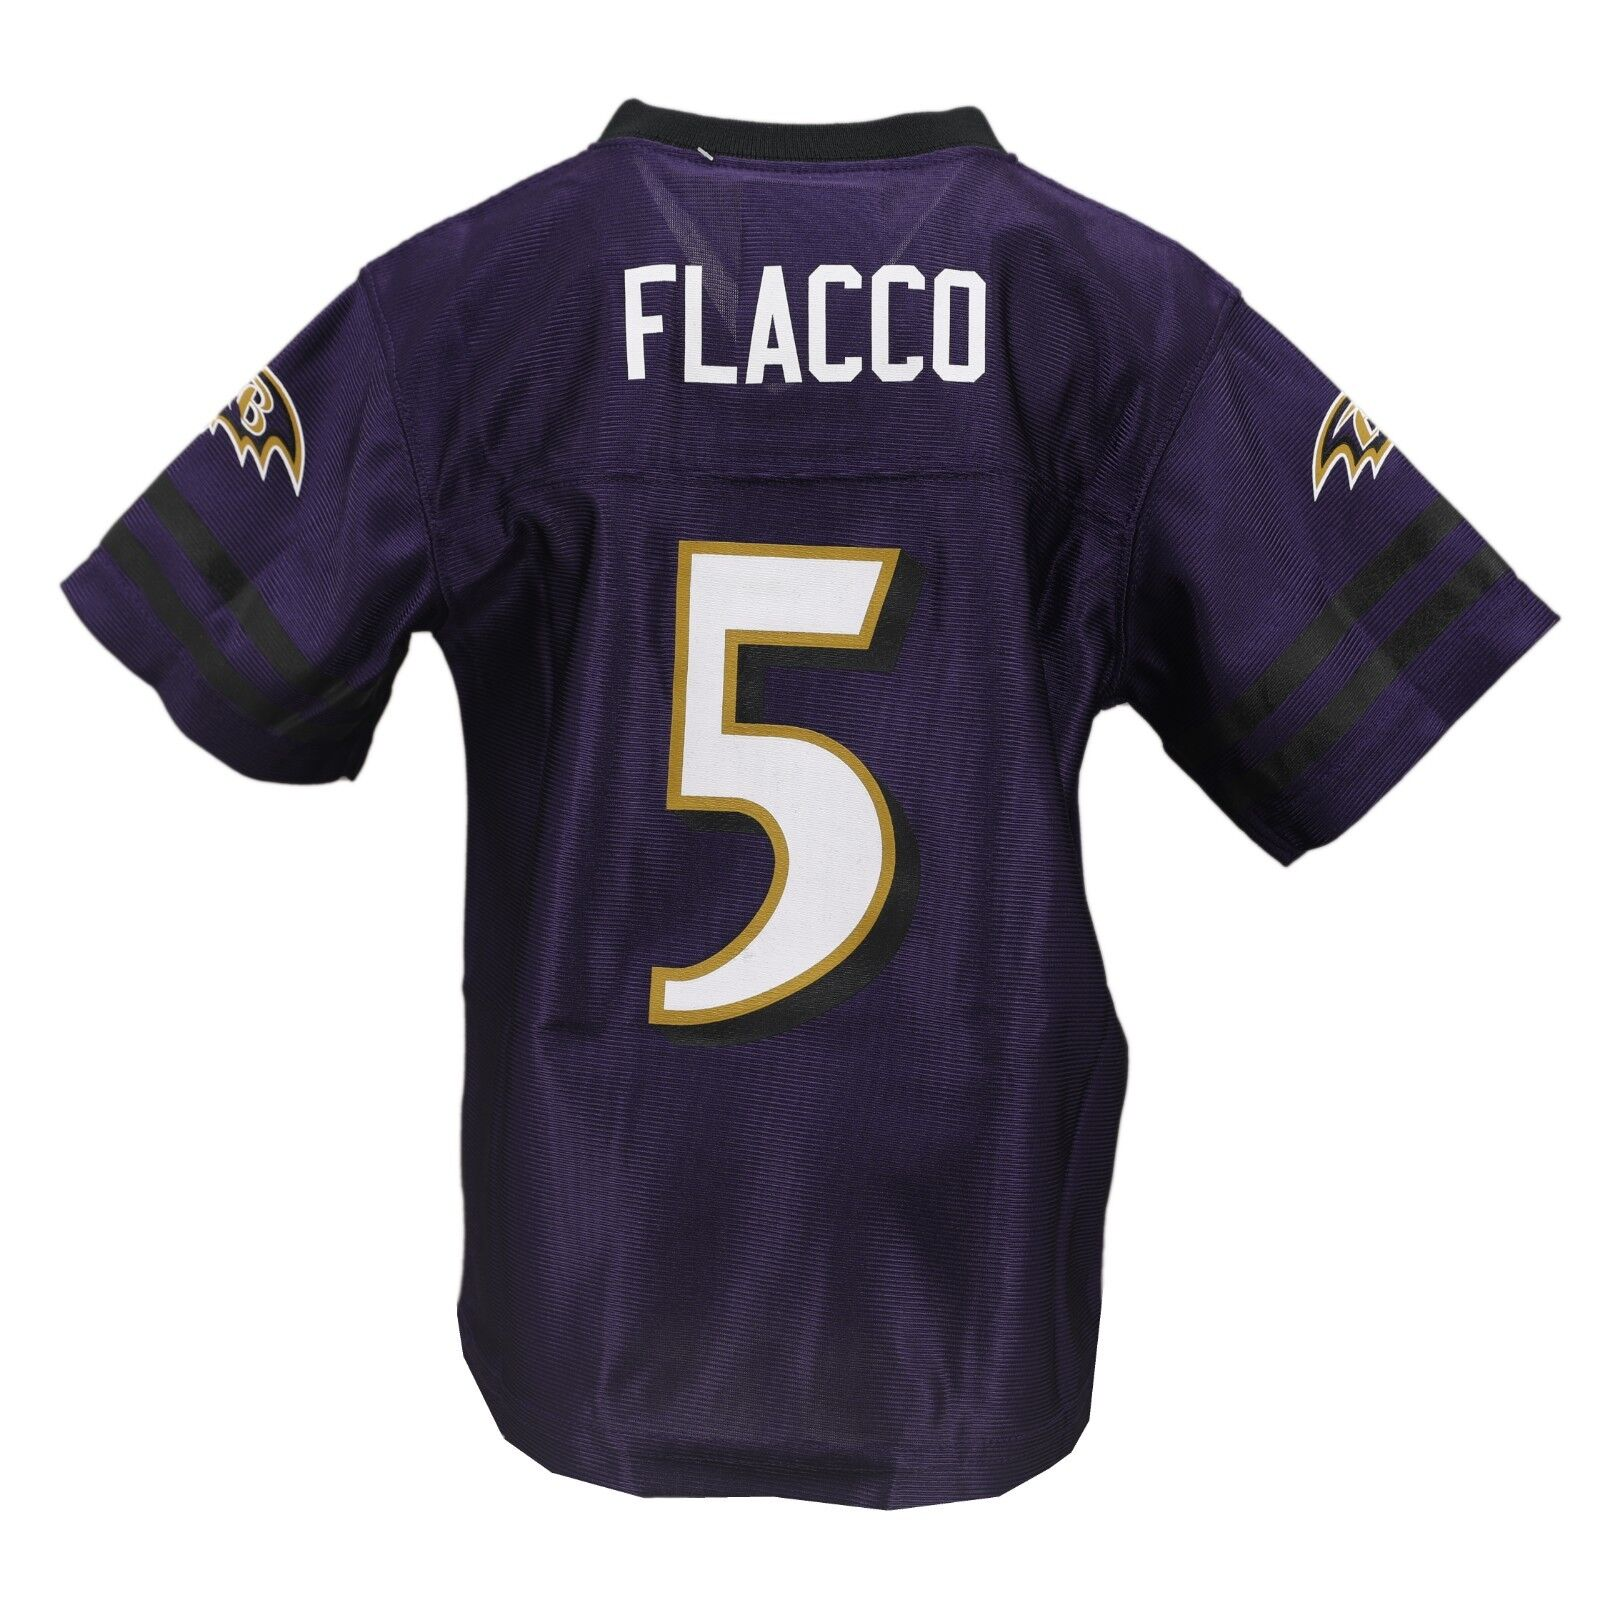 ff1b42f1 Details about Baltimore Ravens Official NFL Infant Toddler Size Joe Flacco  Jersey New Tags